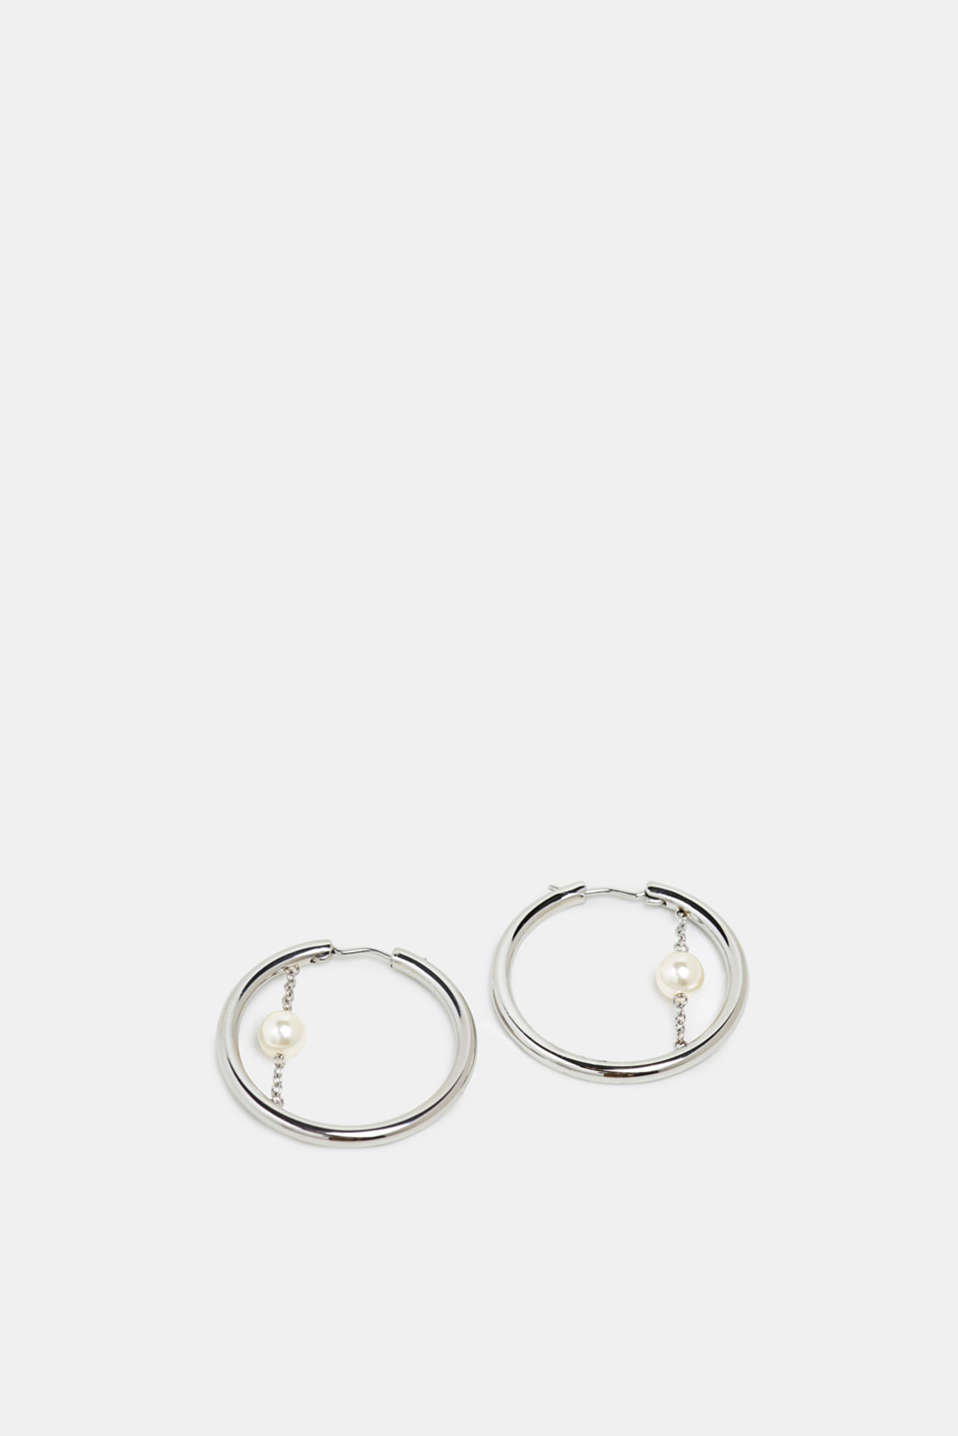 Stainless steel hoop earrings with a beaded detail, SILVER, detail image number 0